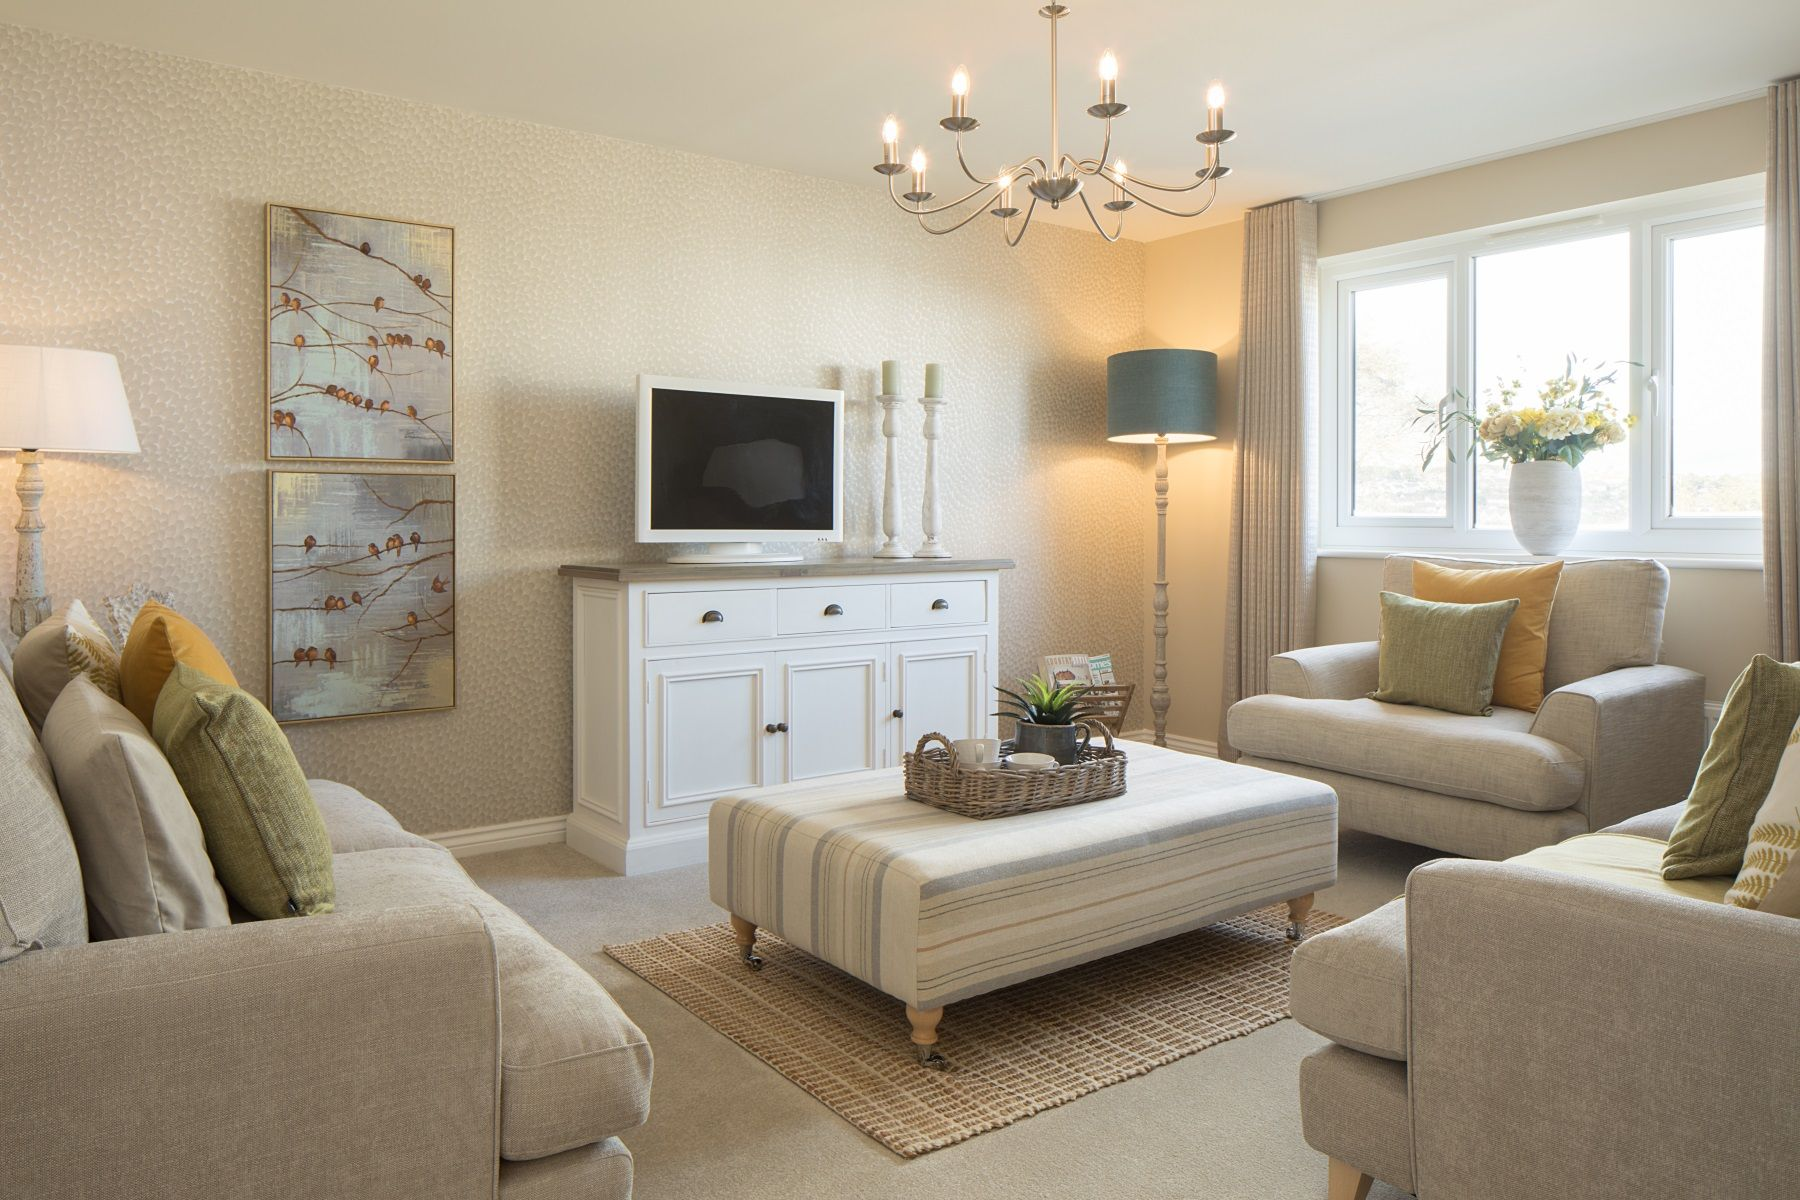 TW Exeter - Chy An Dowr - Midford example living room